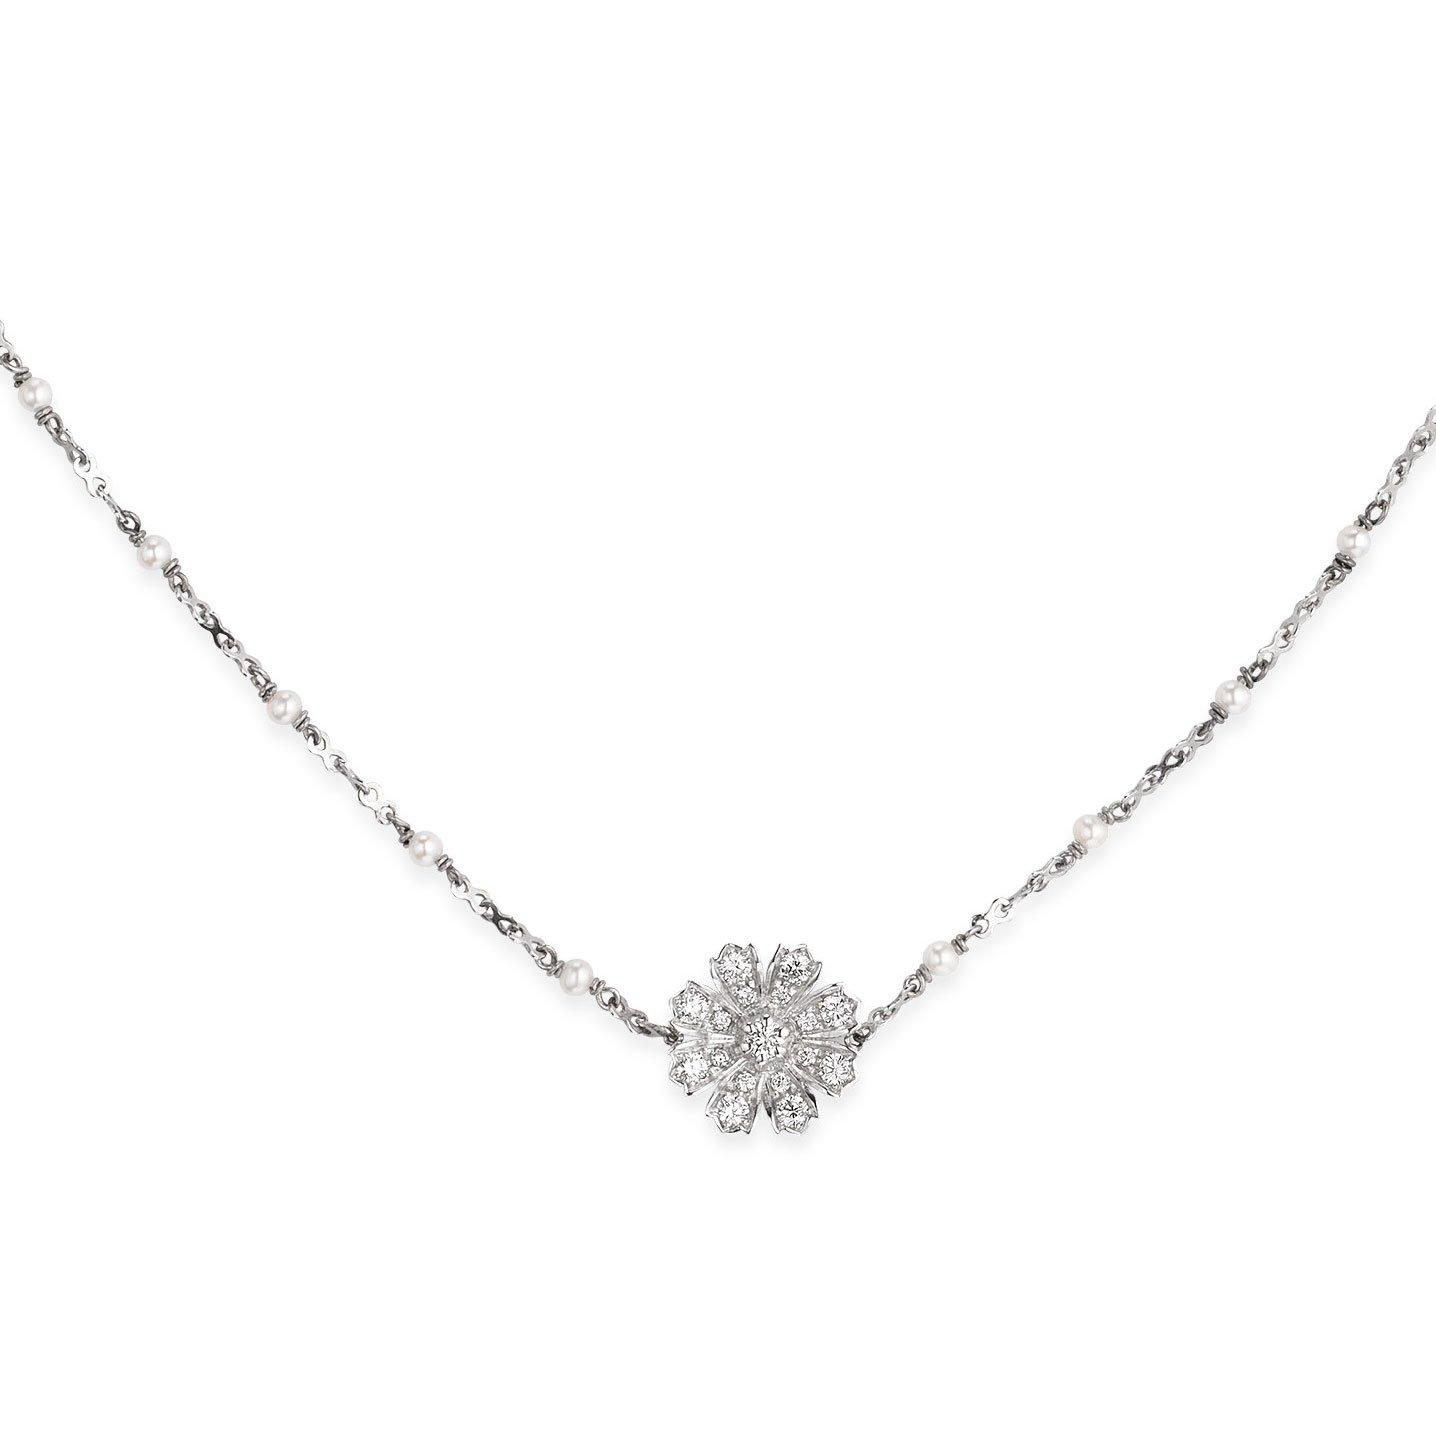 Gucci Flora 18ct White Gold Diamond and Pearl Necklace